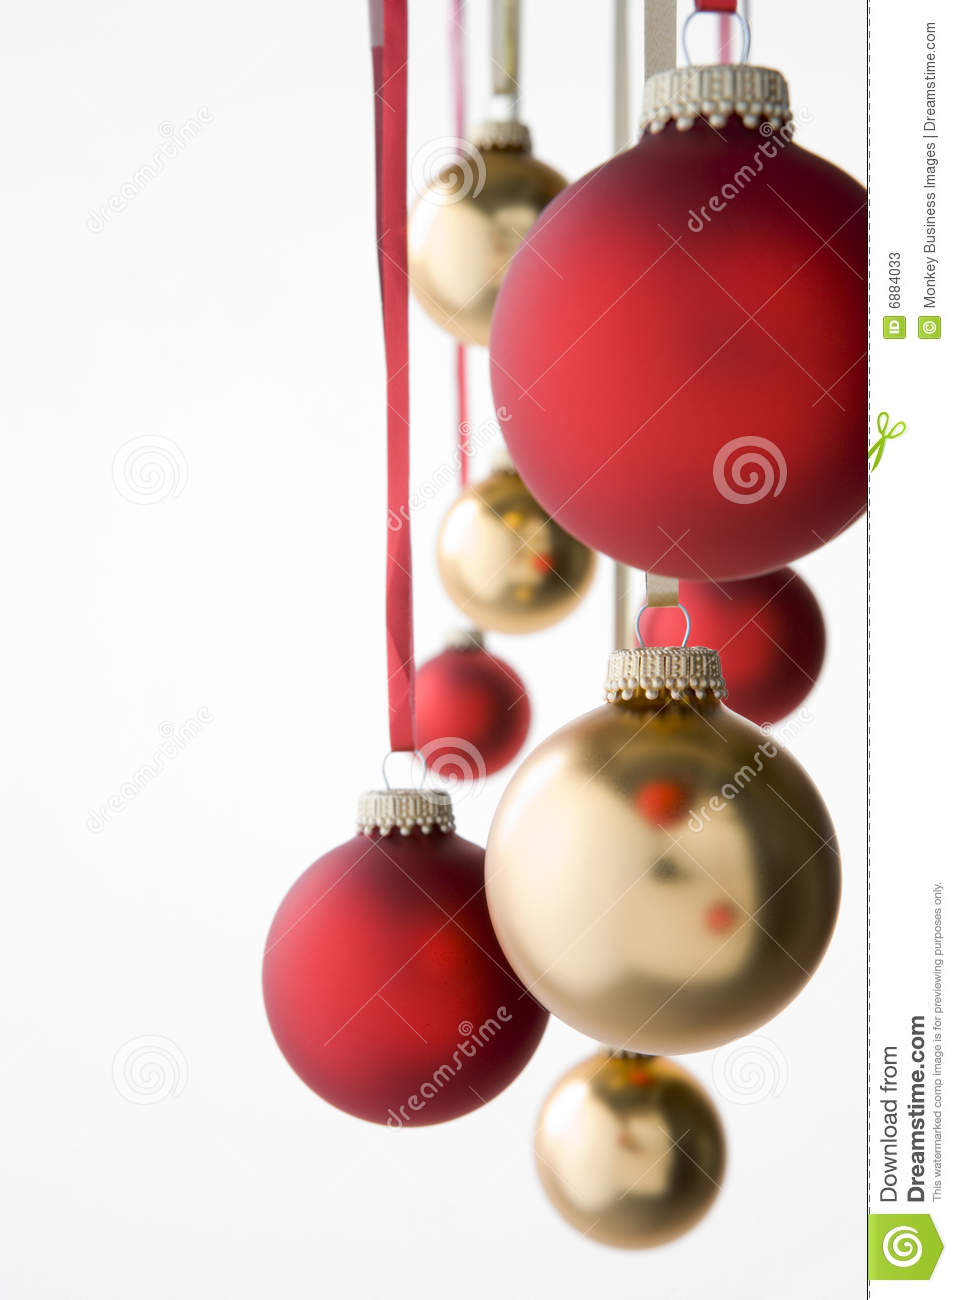 group of hanging christmas decorations - Christmas Hanging Decorations